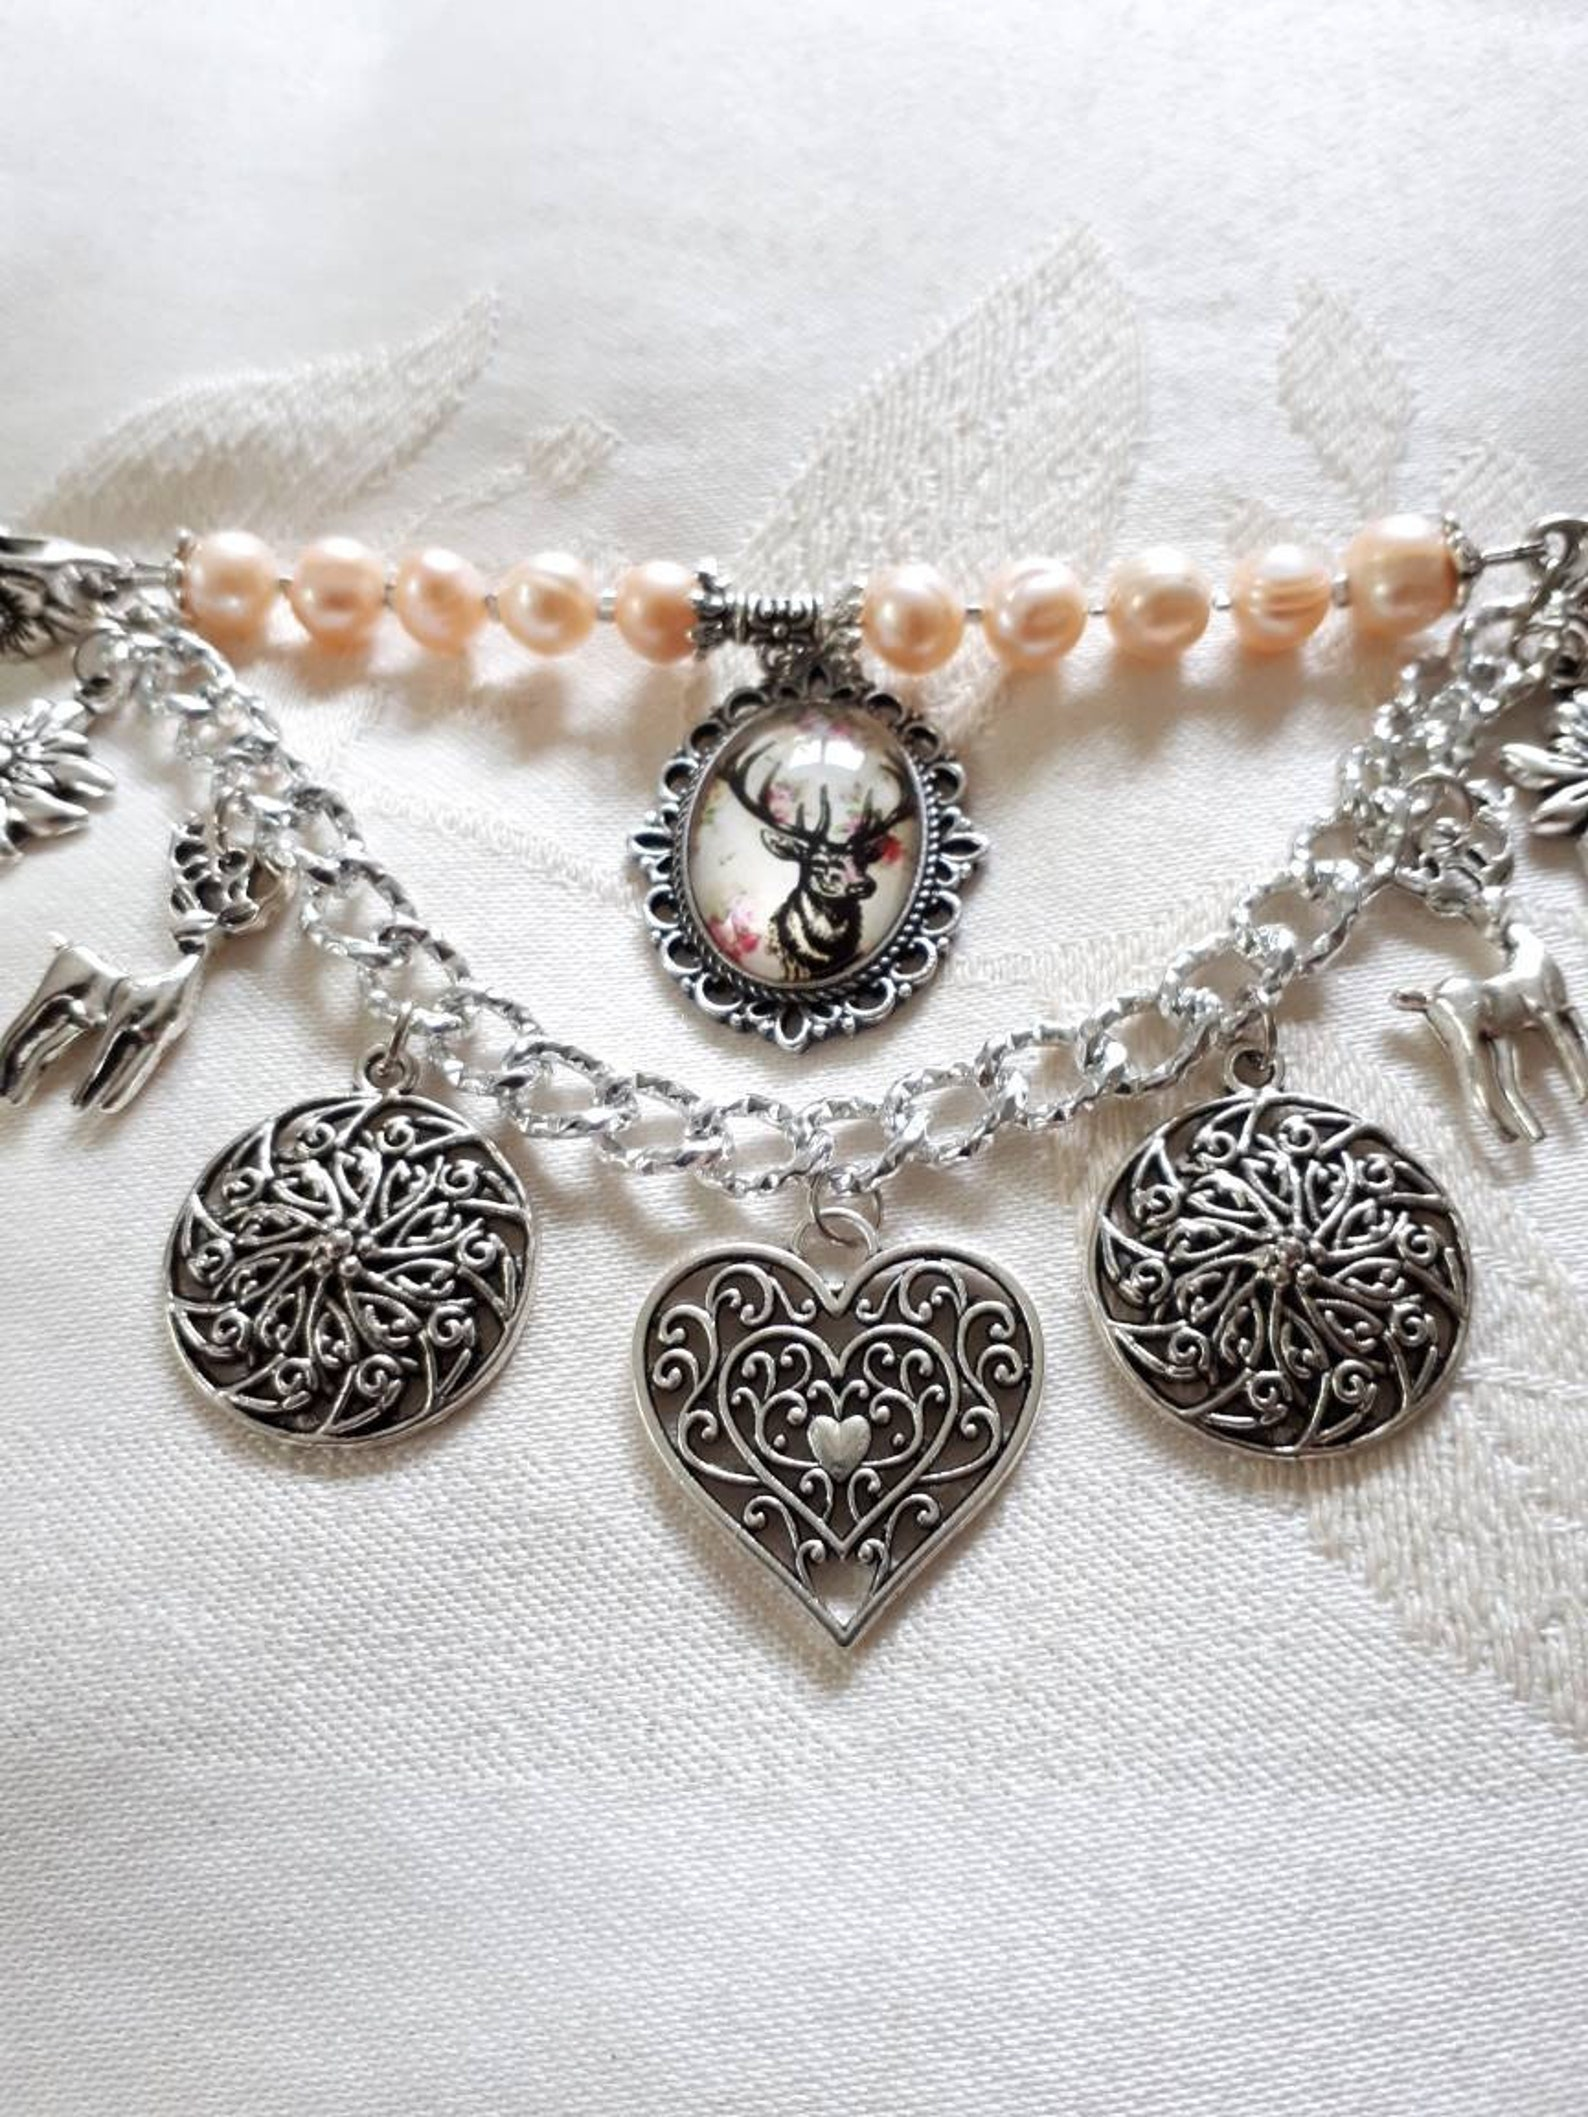 Charivari for dirndl costumes jewelry with freshwater pearl/edelweiss and deer/dirndl jewelry with heart/Oktoberfest/costumes wedding/Wiesn